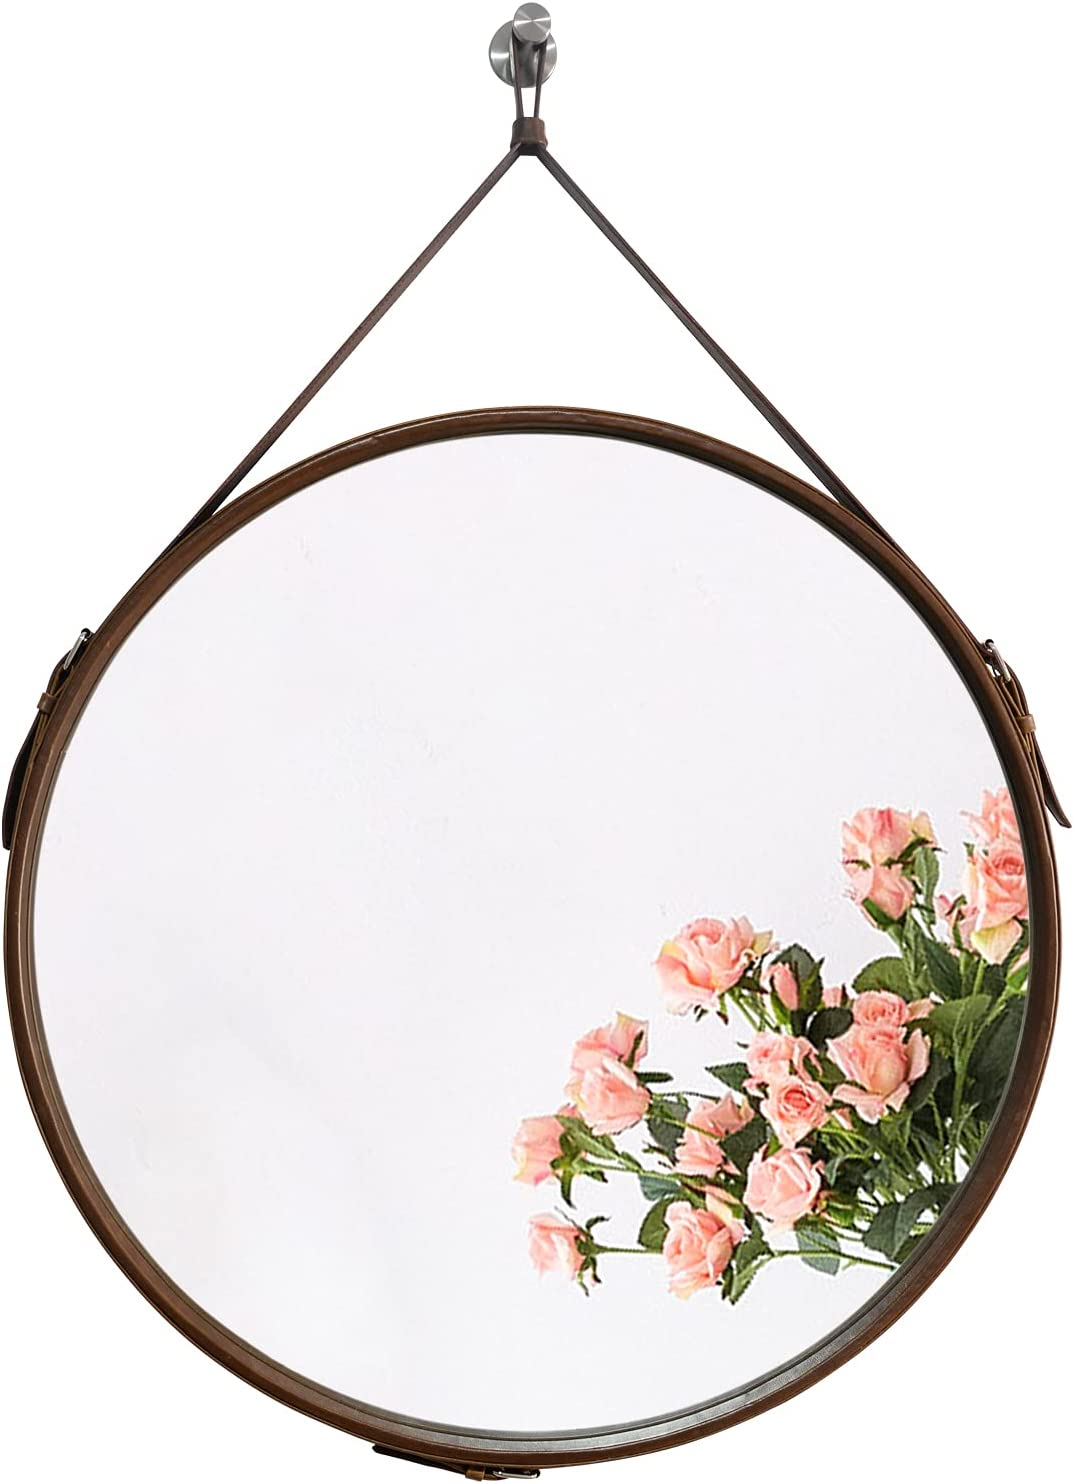 Handmade Leather Hanging Wall Mirror - 19.7 Inch Brown Leather Frame Bathroom Mirror, Large Circle Adjustable Mirror for Wall Decor, Bedroom, Living Room & Entryway.